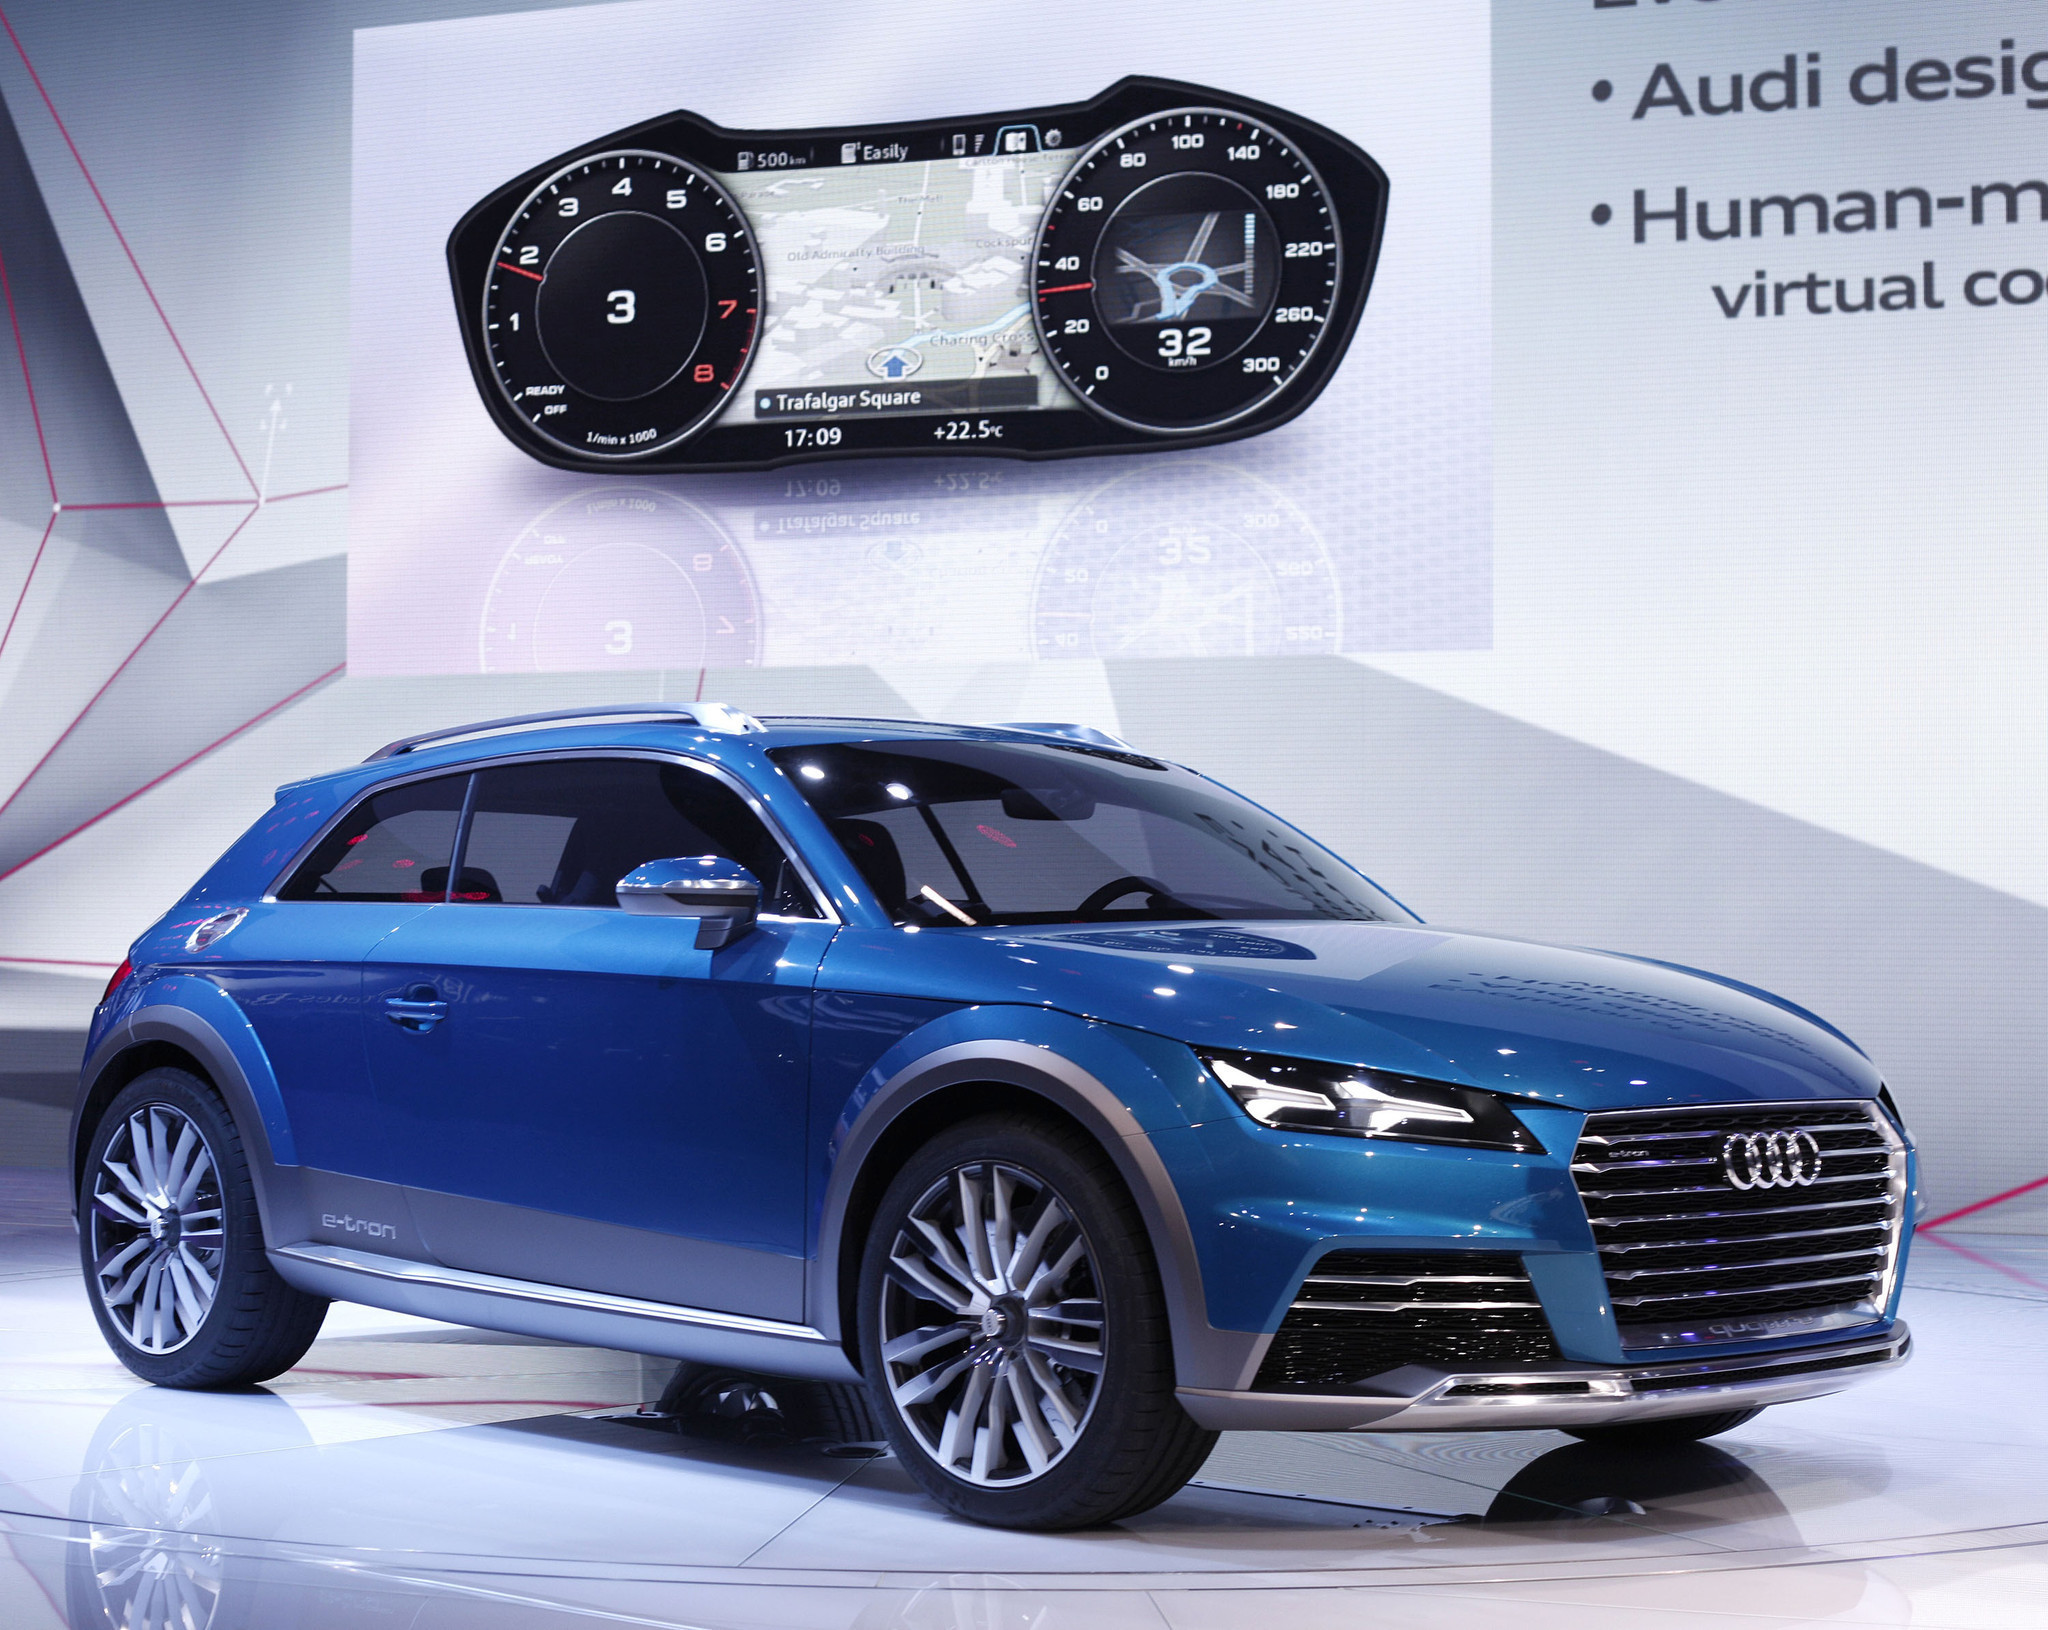 2015 concept cars: Which ones will become production cars?